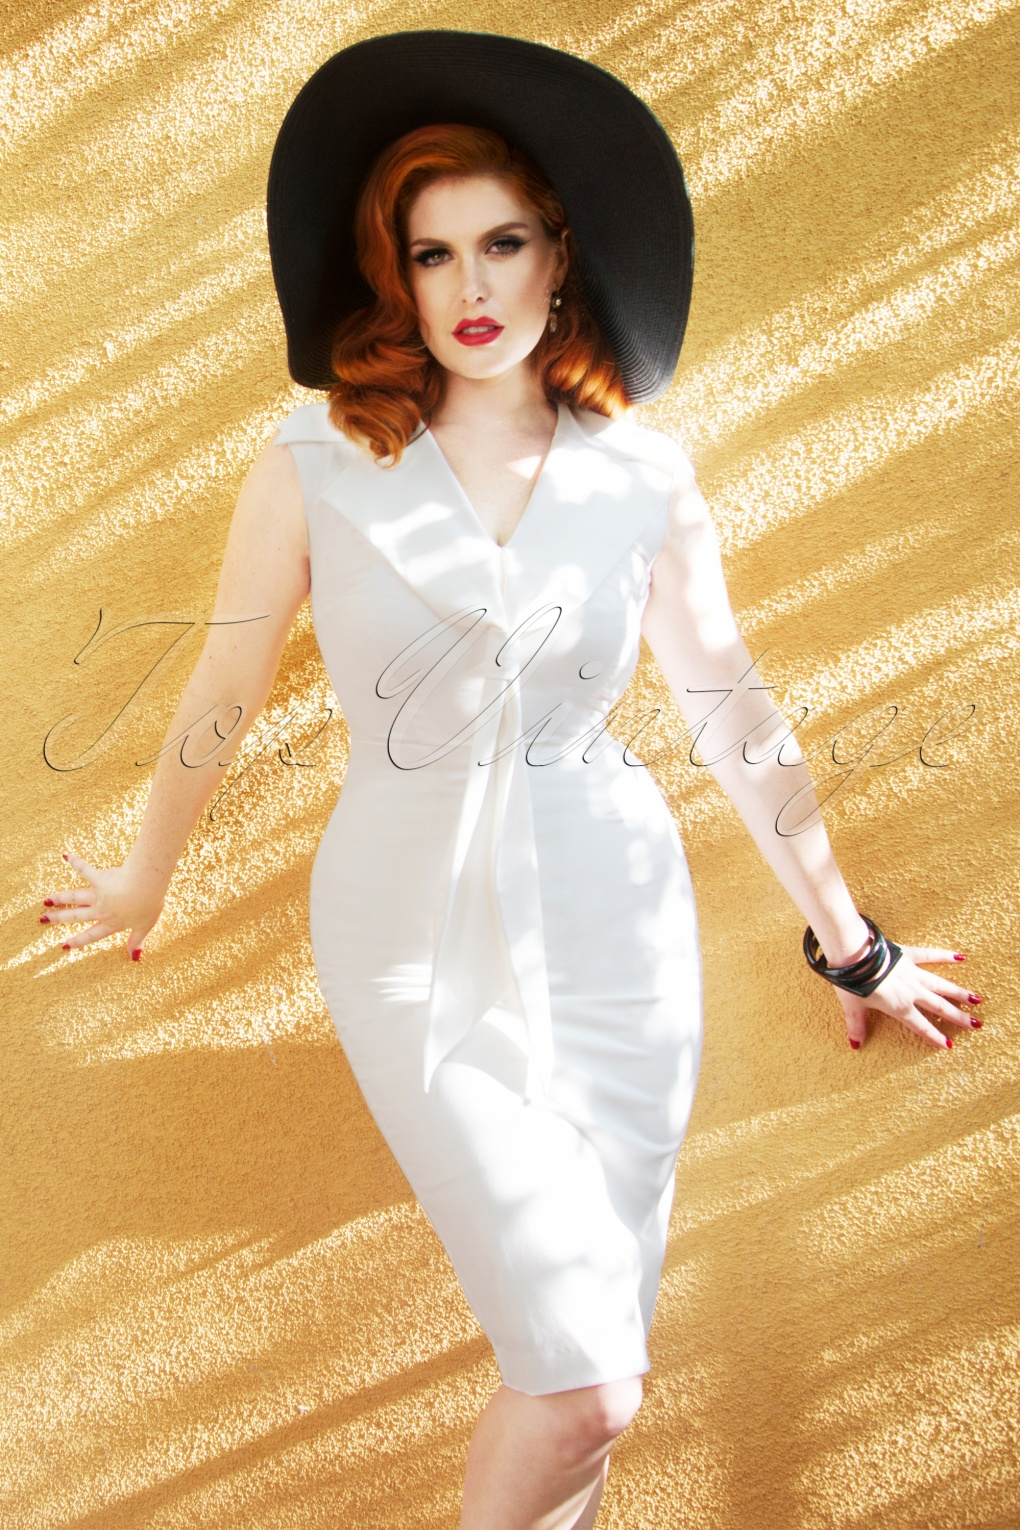 Swing Dance Dresses | Lindy Hop Dresses & Clothing The Genevieve Pencil Dress in Pure White £48.25 AT vintagedancer.com